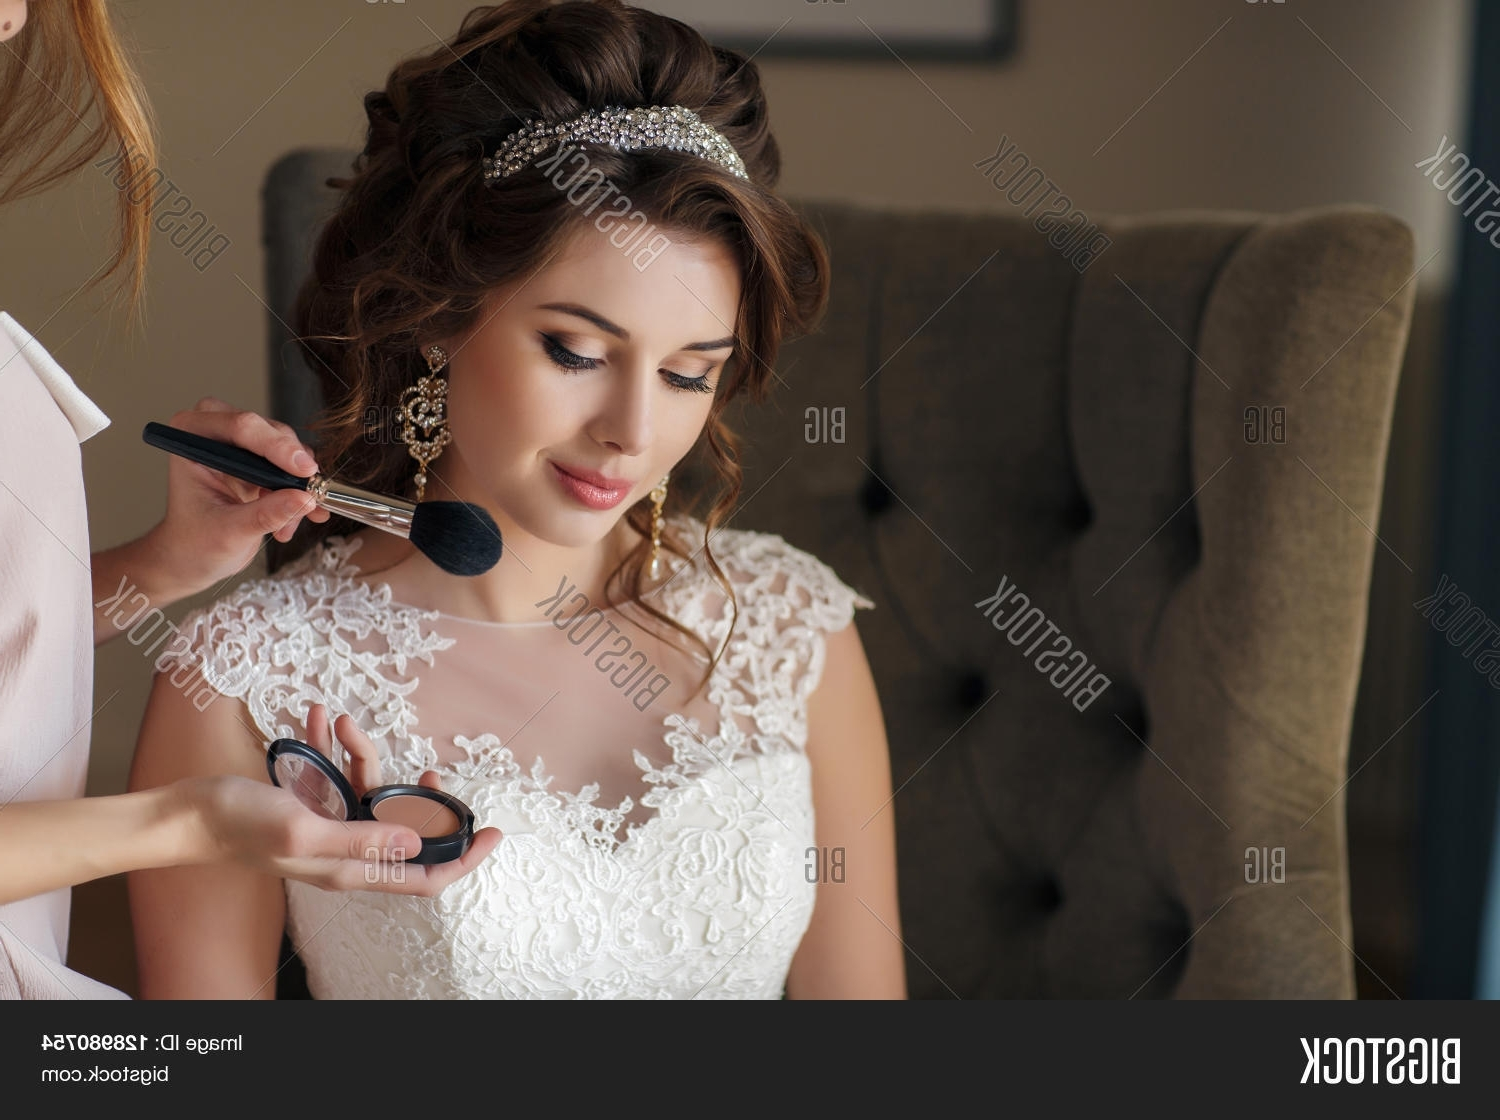 Beautiful Young Bride Image & Photo (Free Trial) (View 4 of 15)